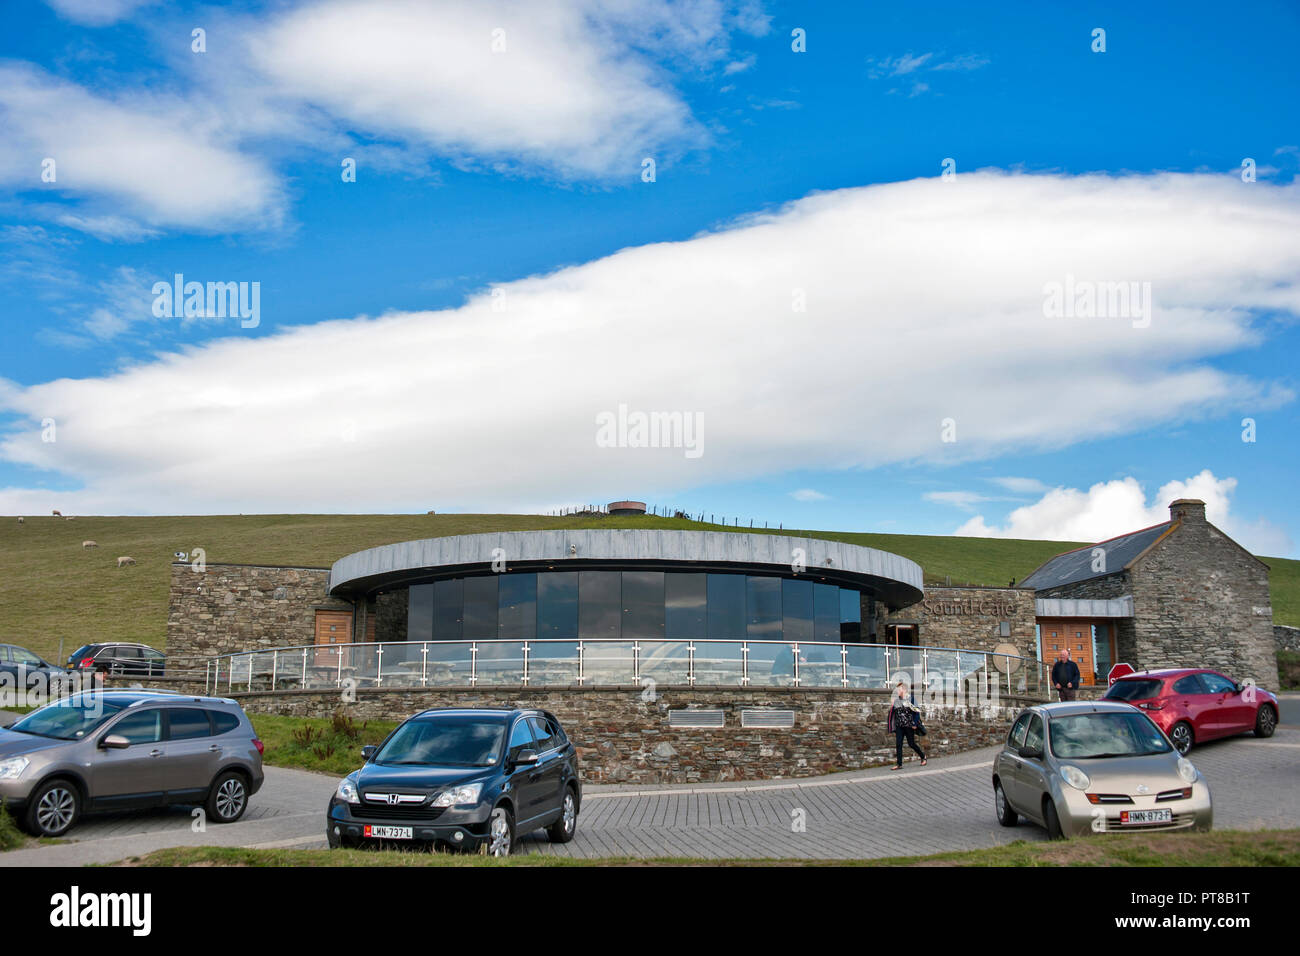 The Sound Restaurant at the Sound,  Isle of Man on  a bright day - Stock Image